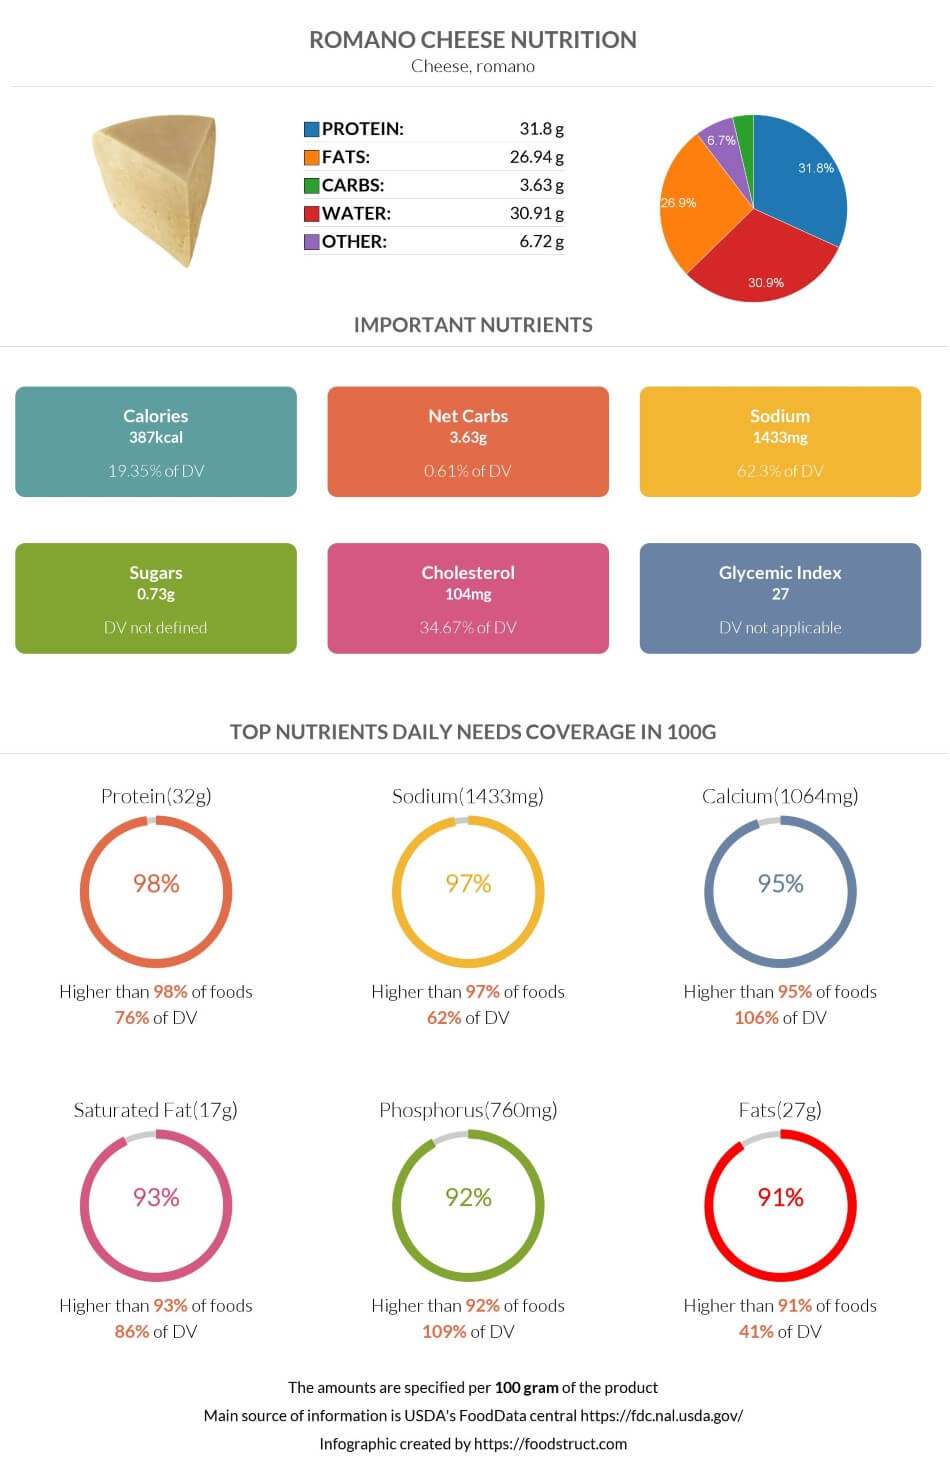 Romano cheese nutrition infographic